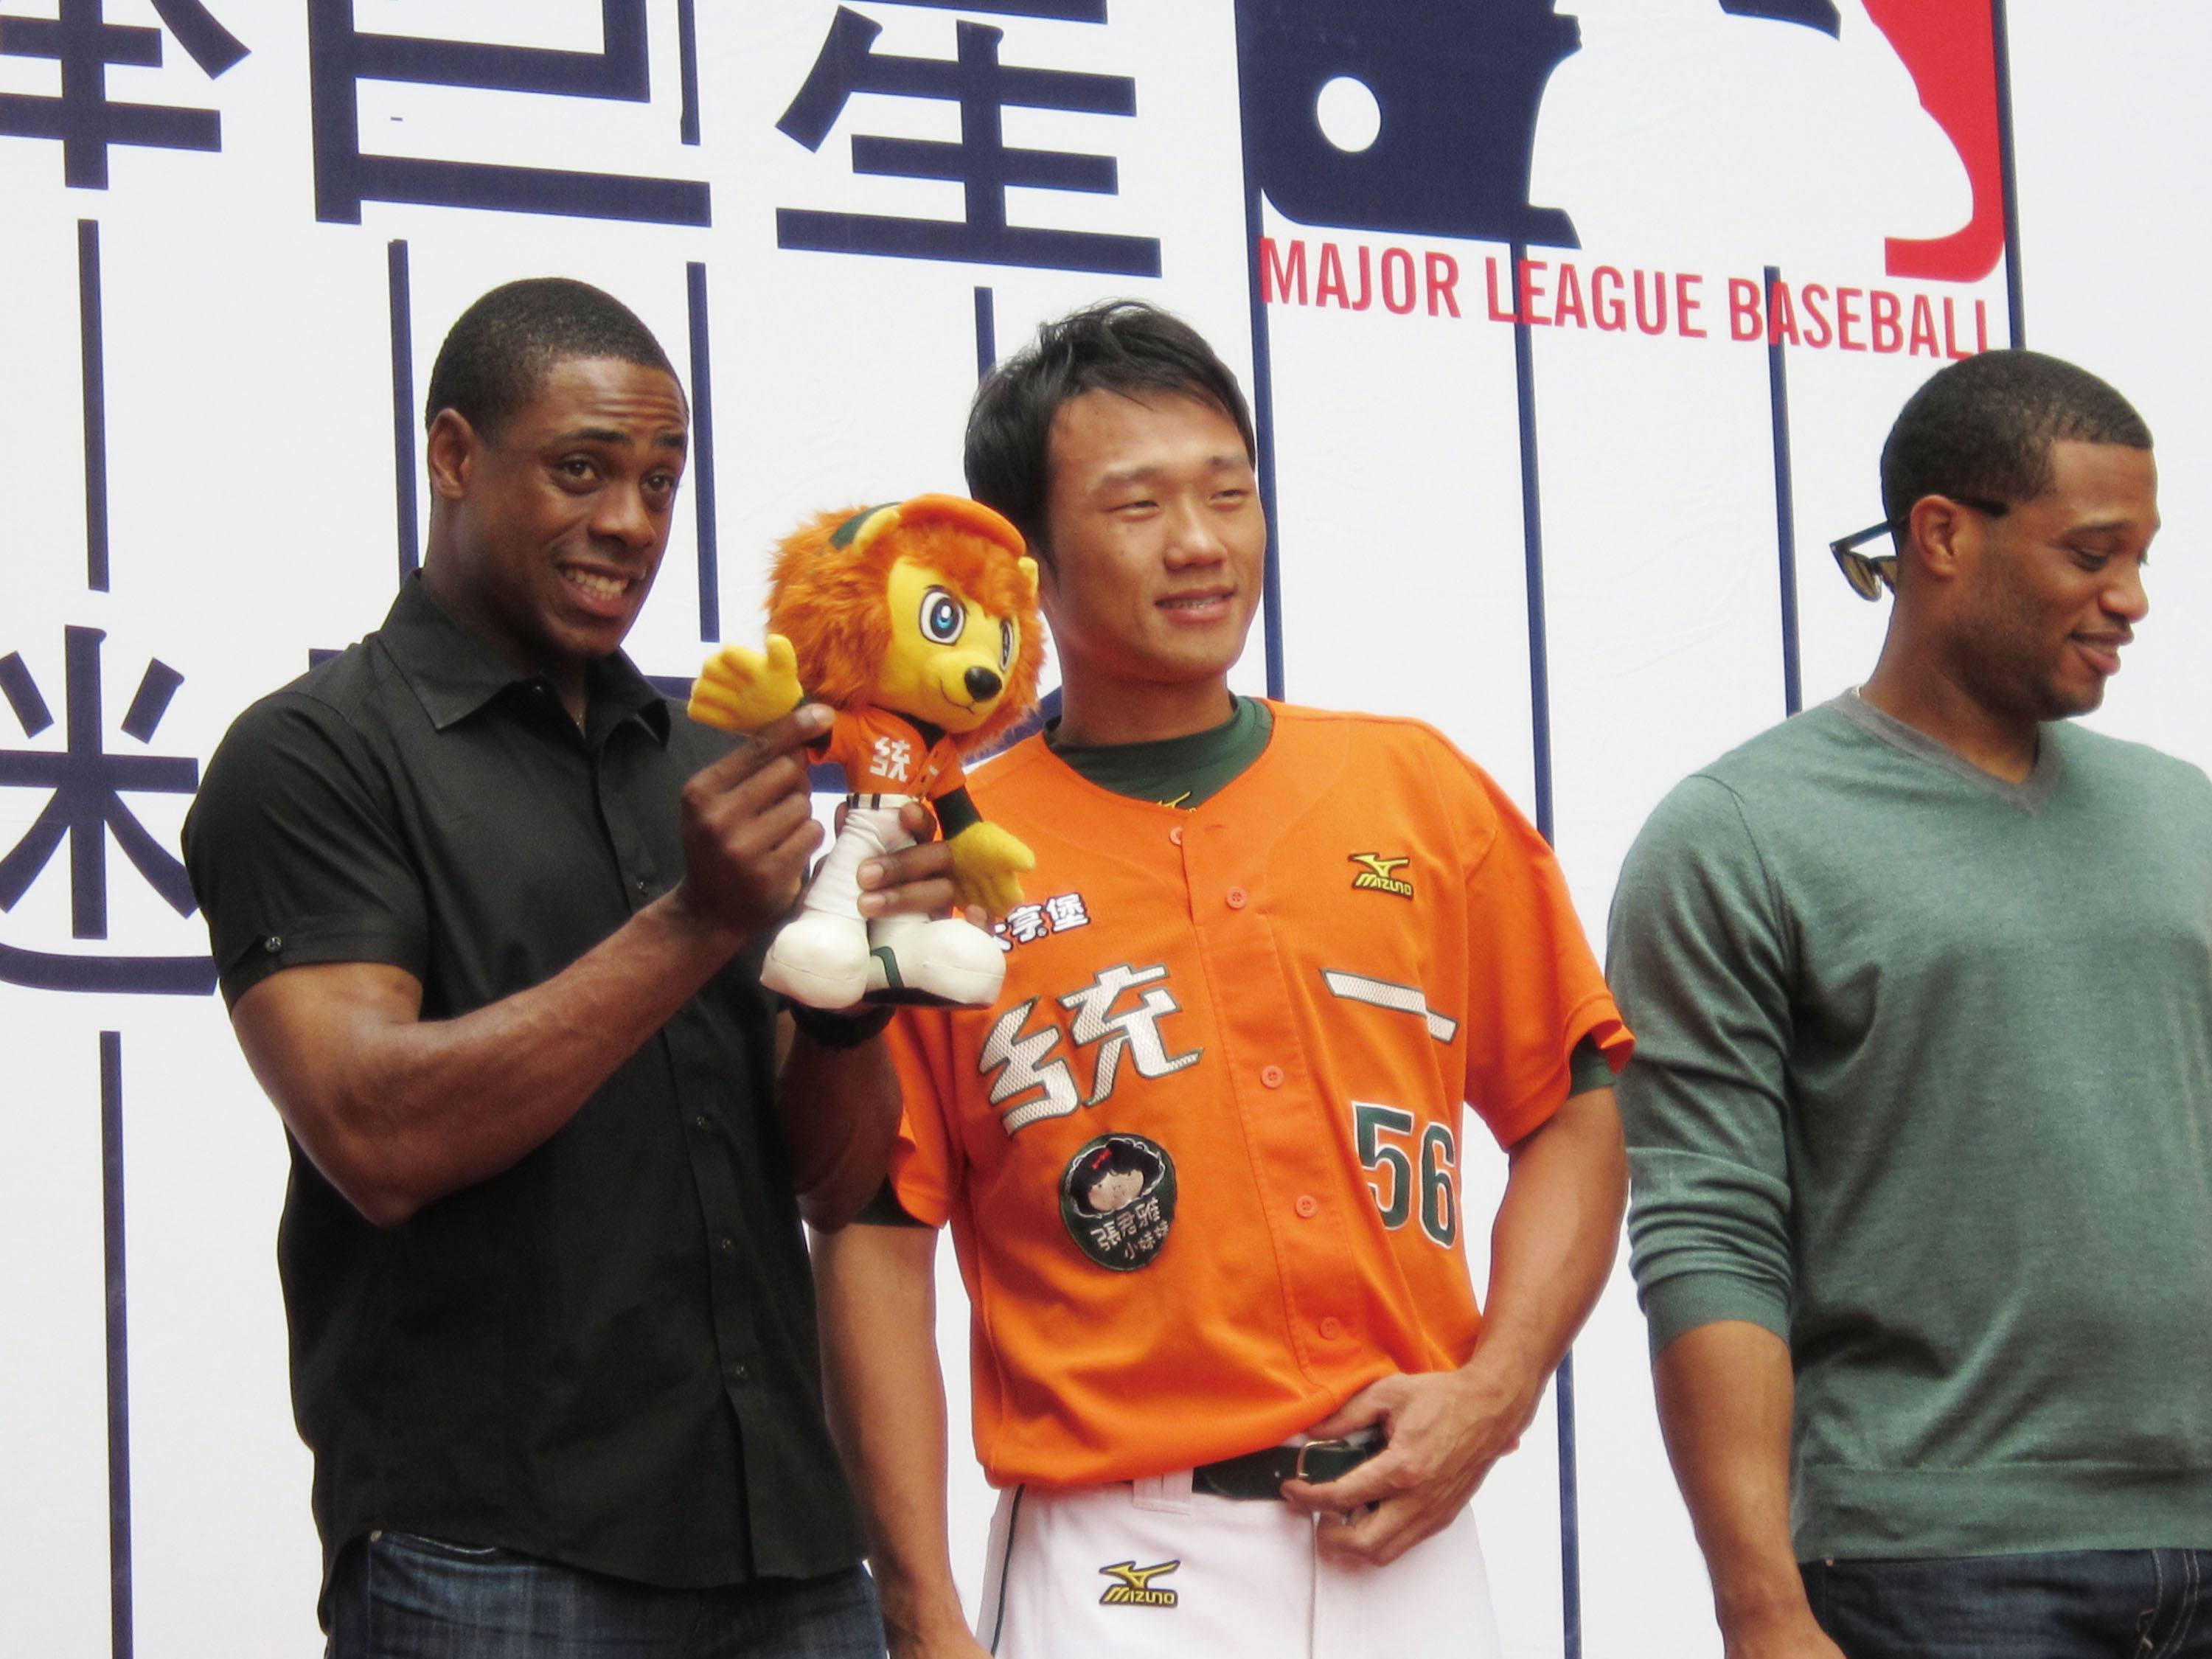 New York Yankees player Curtis Granderson (left) attends a fans party and takes a photo with Taiwanese UniPresident Lions Baseball Team player Liu Fuh...